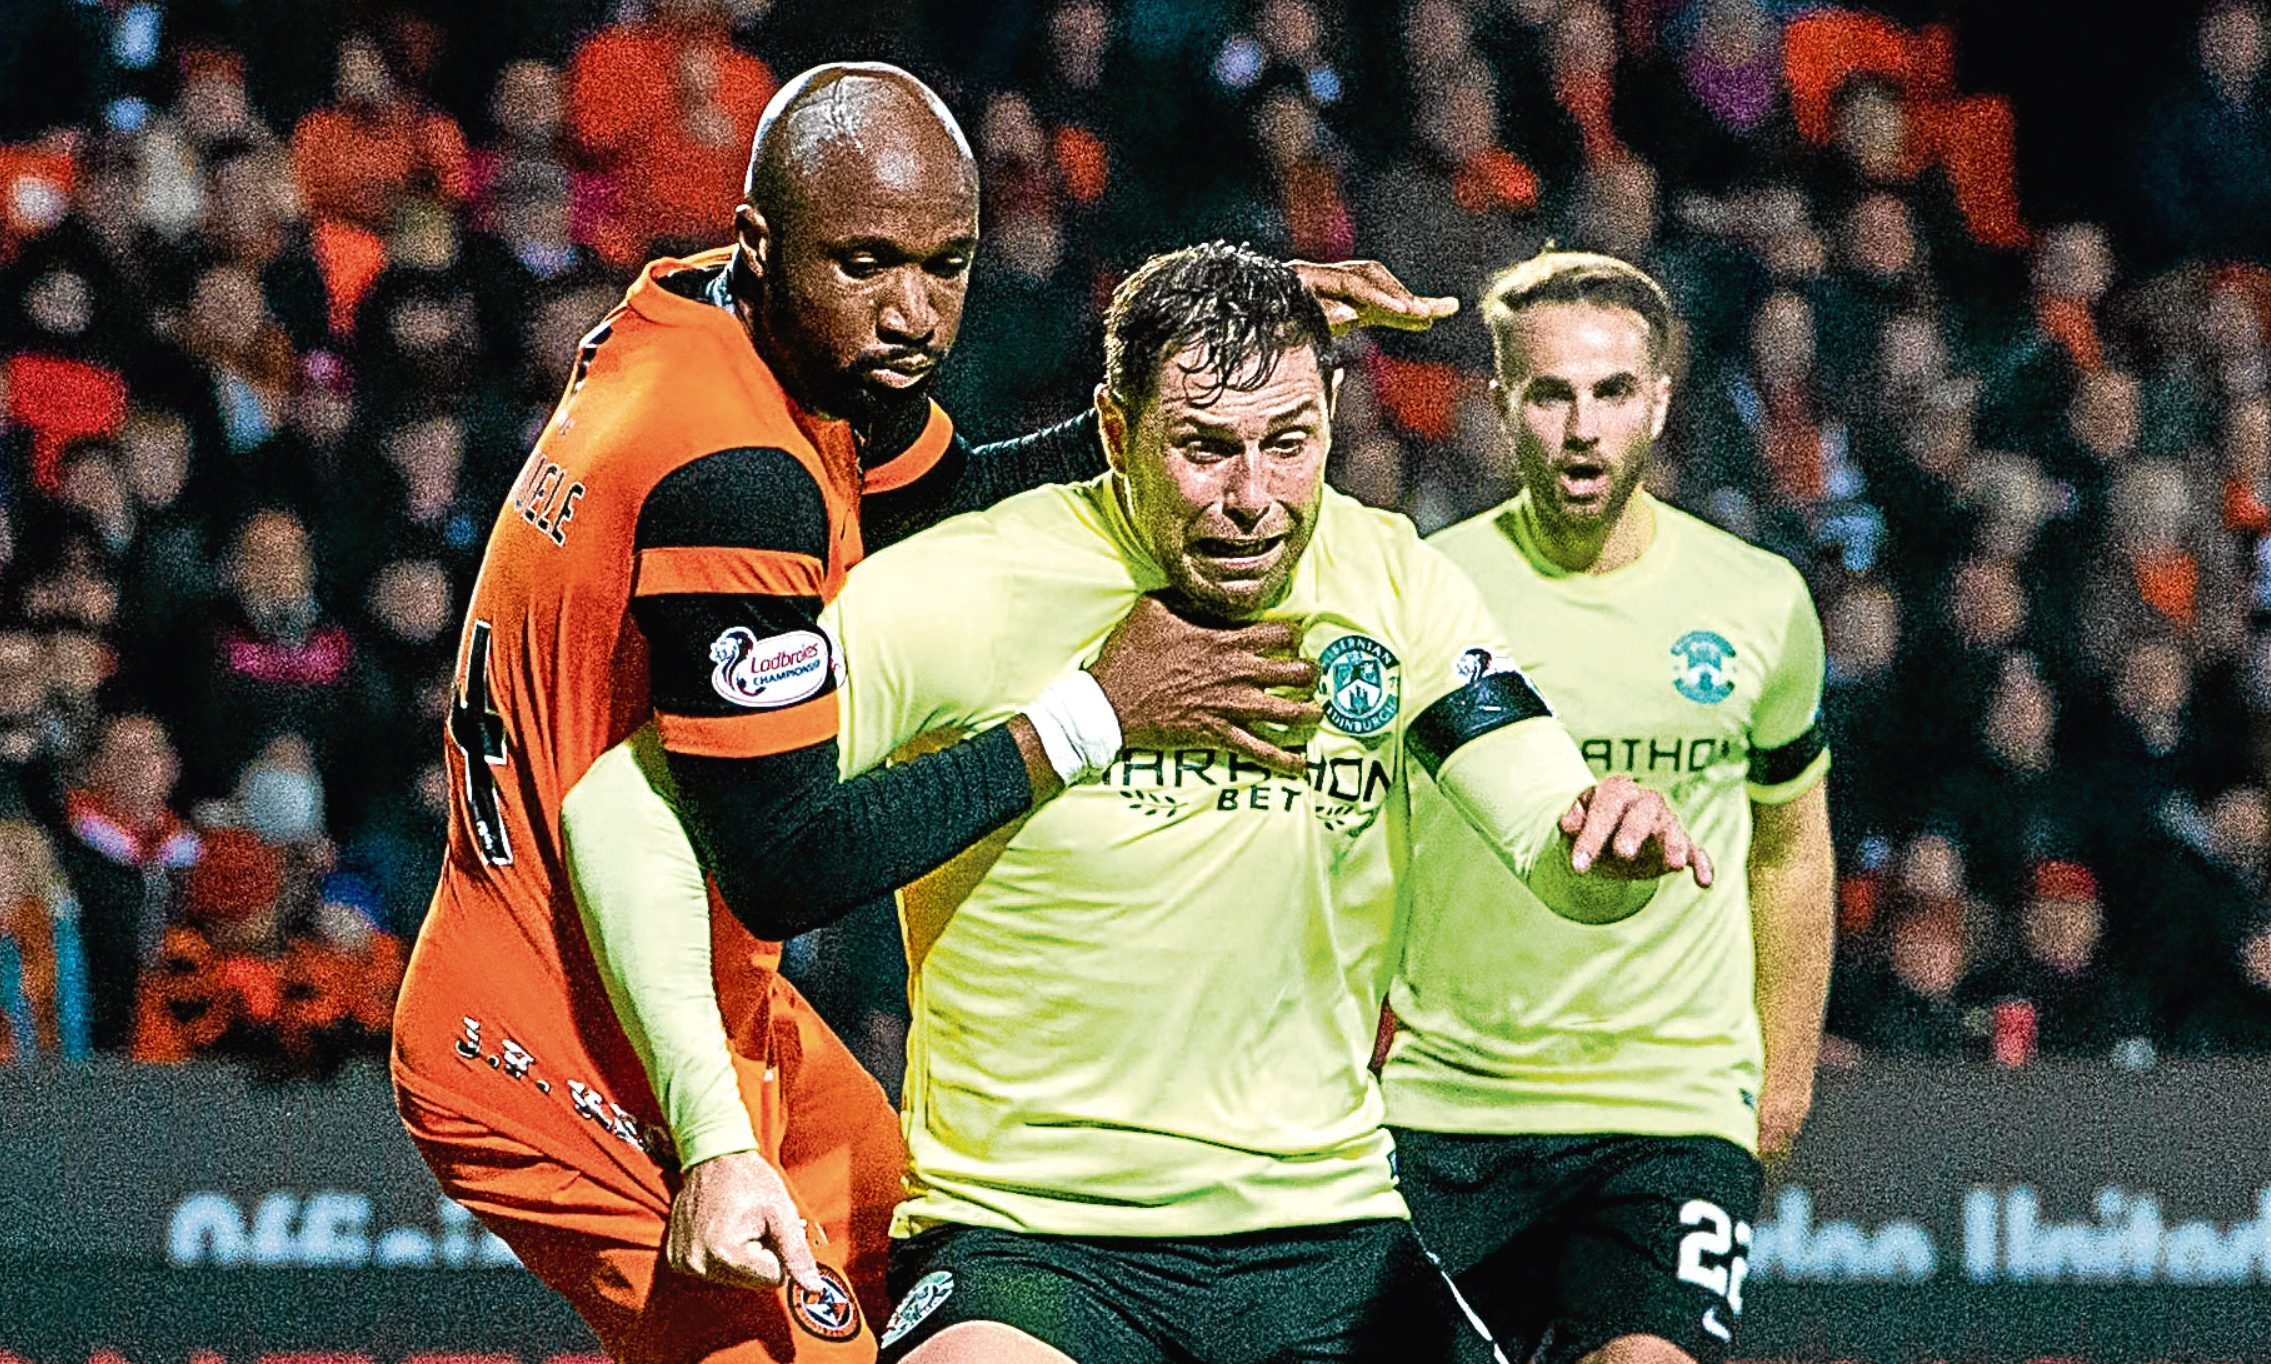 Dundee United defender William Edjenguele gets to grips with Hibs' Grant Holt the last time the two sides played